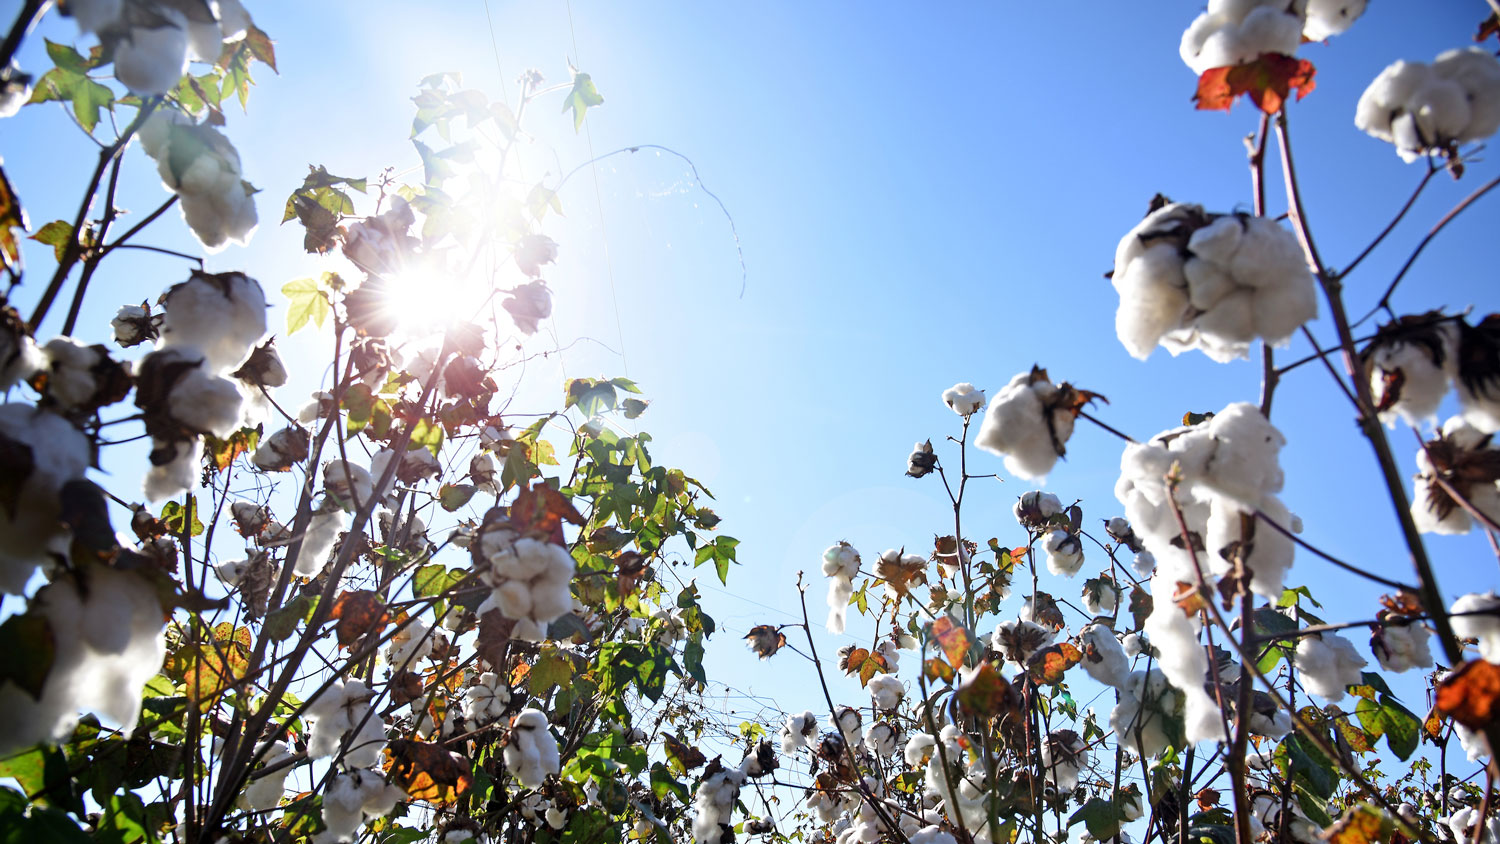 Cotton field with the sun shining